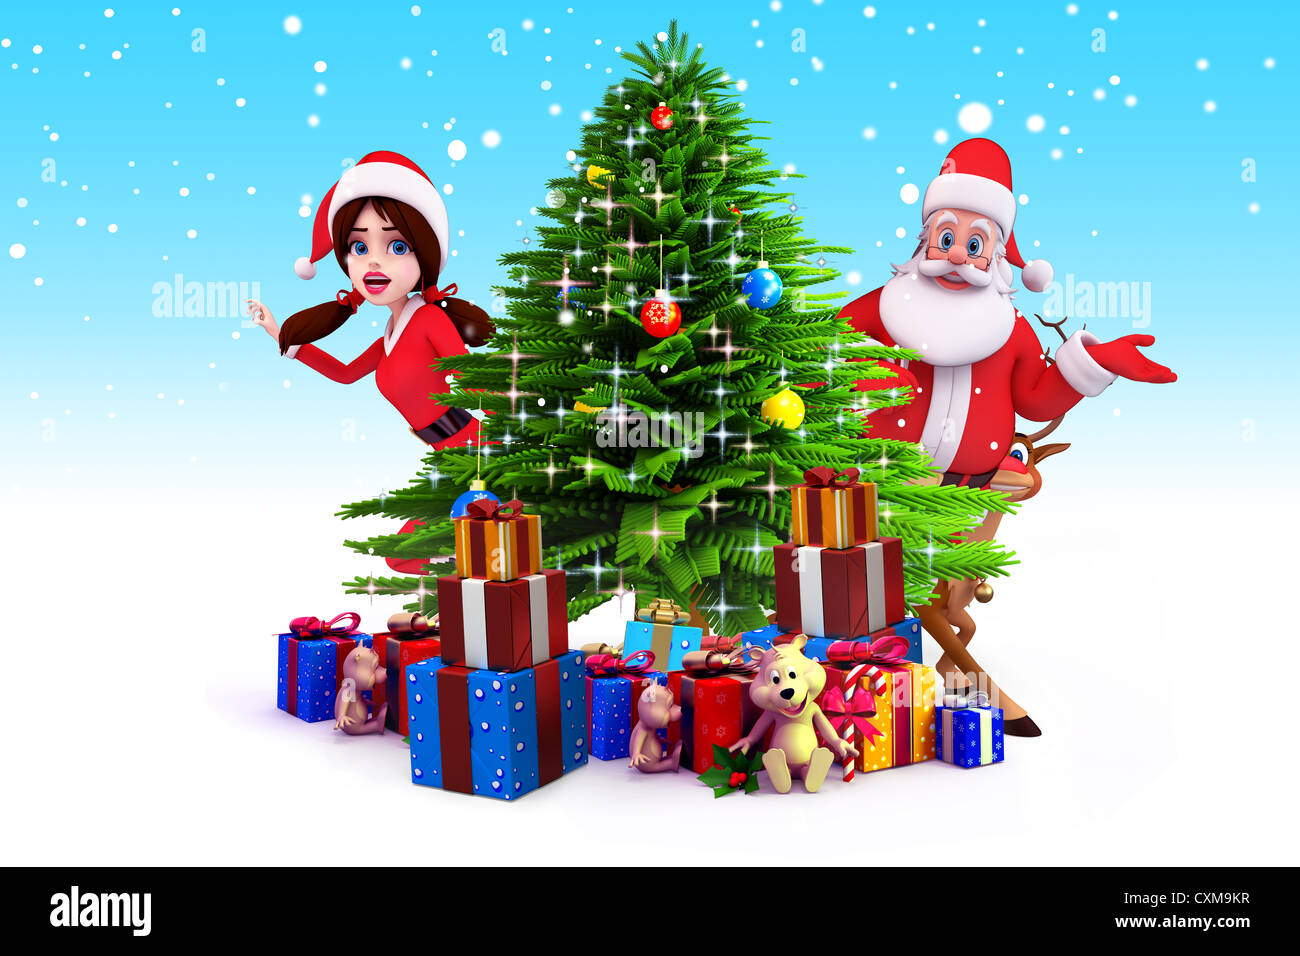 santa claus with christmas tree in iceland stock image